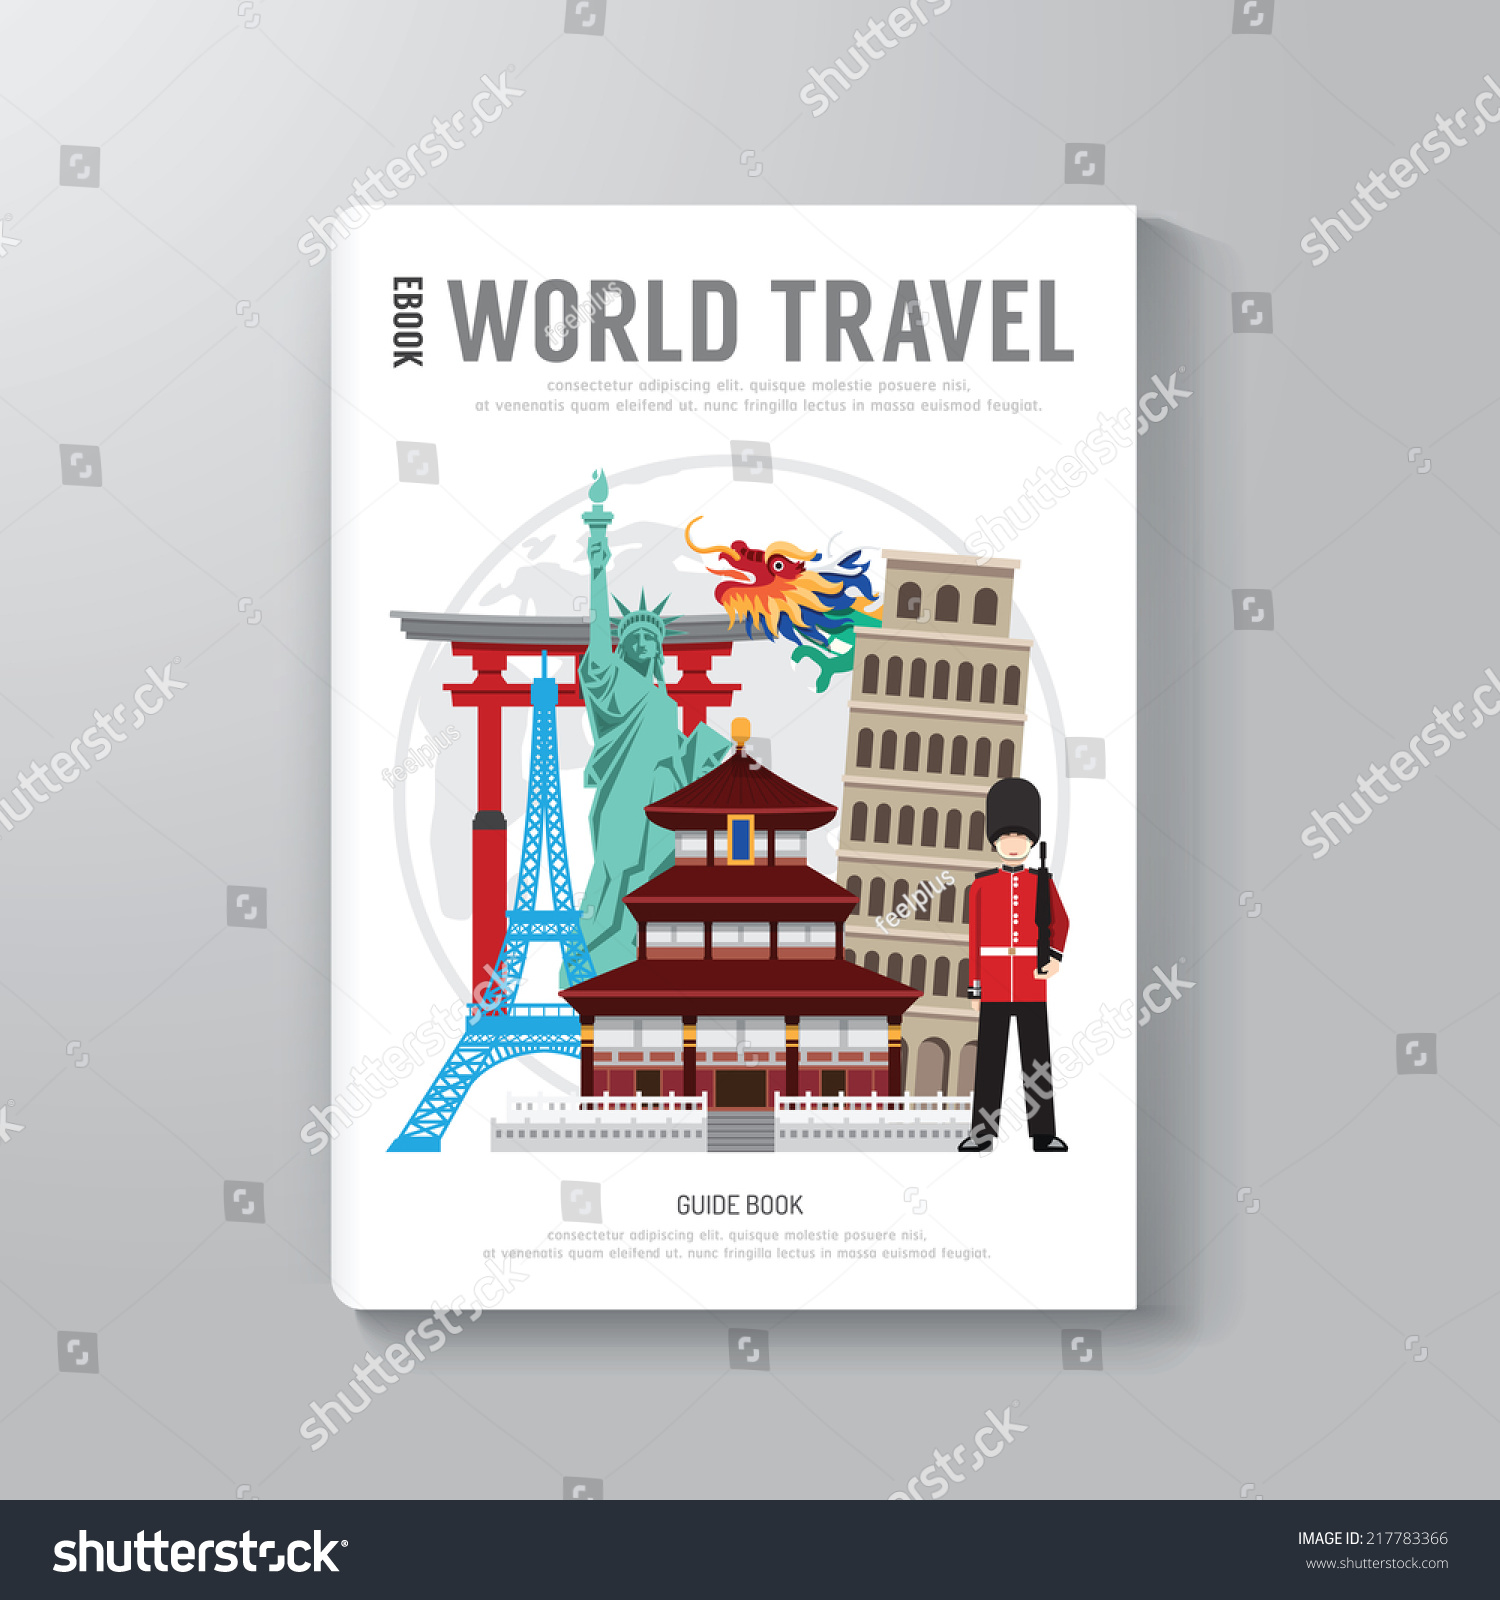 Business Book Cover Design Template : World travel business book template design stock vector